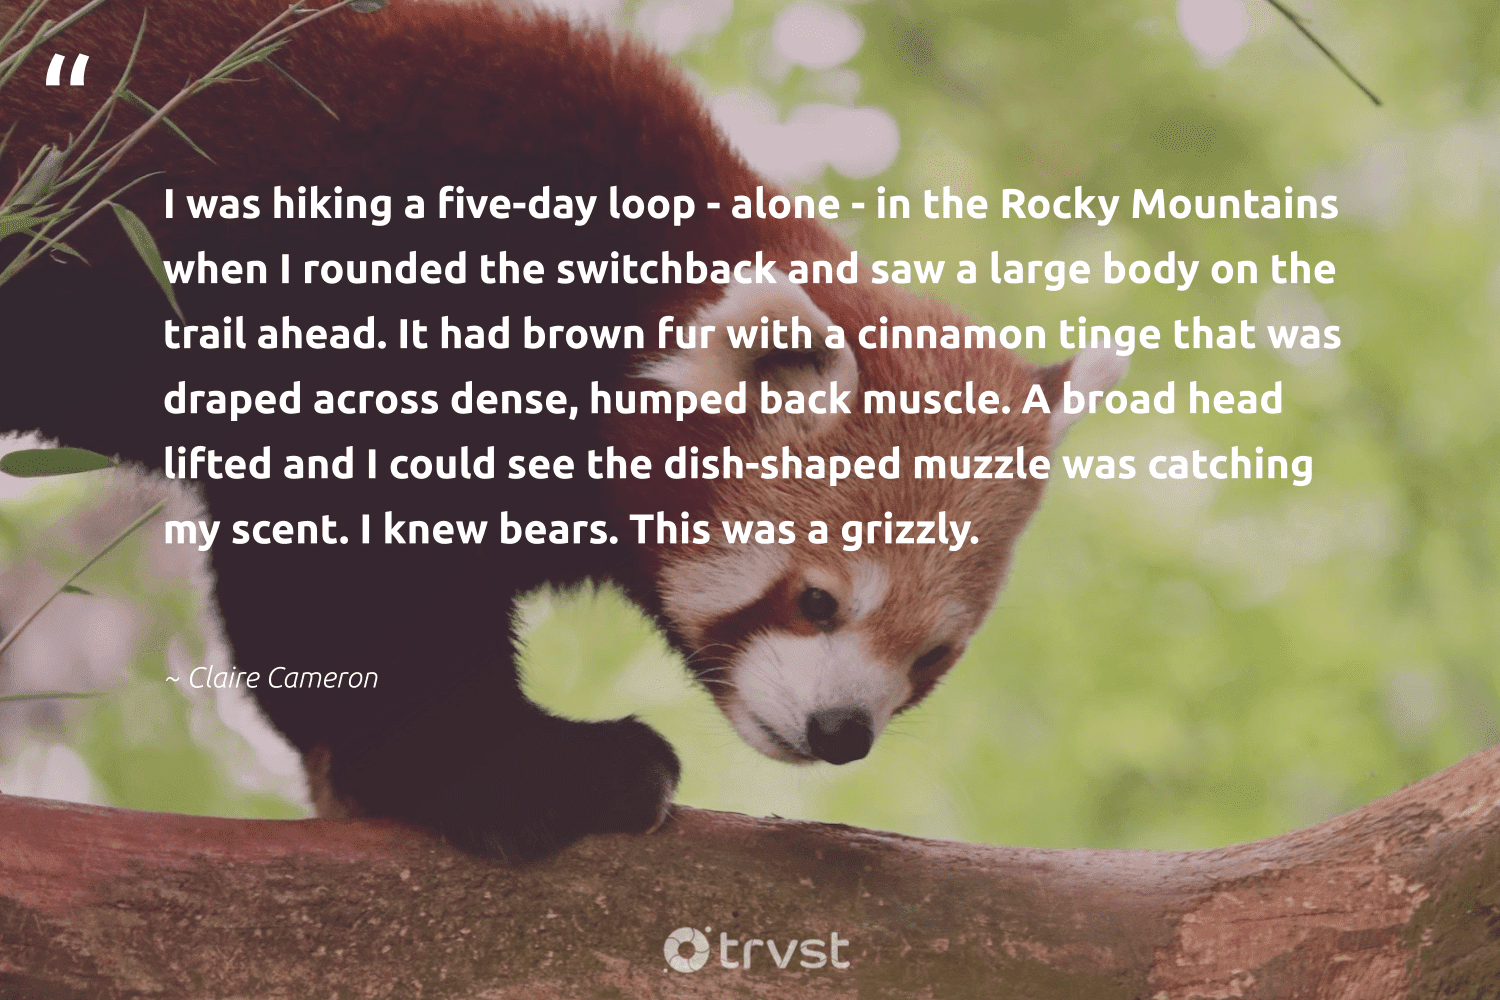 """""""I was hiking a five-day loop - alone - in the Rocky Mountains when I rounded the switchback and saw a large body on the trail ahead. It had brown fur with a cinnamon tinge that was draped across dense, humped back muscle. A broad head lifted and I could see the dish-shaped muzzle was catching my scent. I knew bears. This was a grizzly.""""  - Claire Cameron #trvst #quotes #hiking #mountains #bears #wildlifeprotection #dogood #splendidanimals #socialchange #amazingworld #impact #bear"""